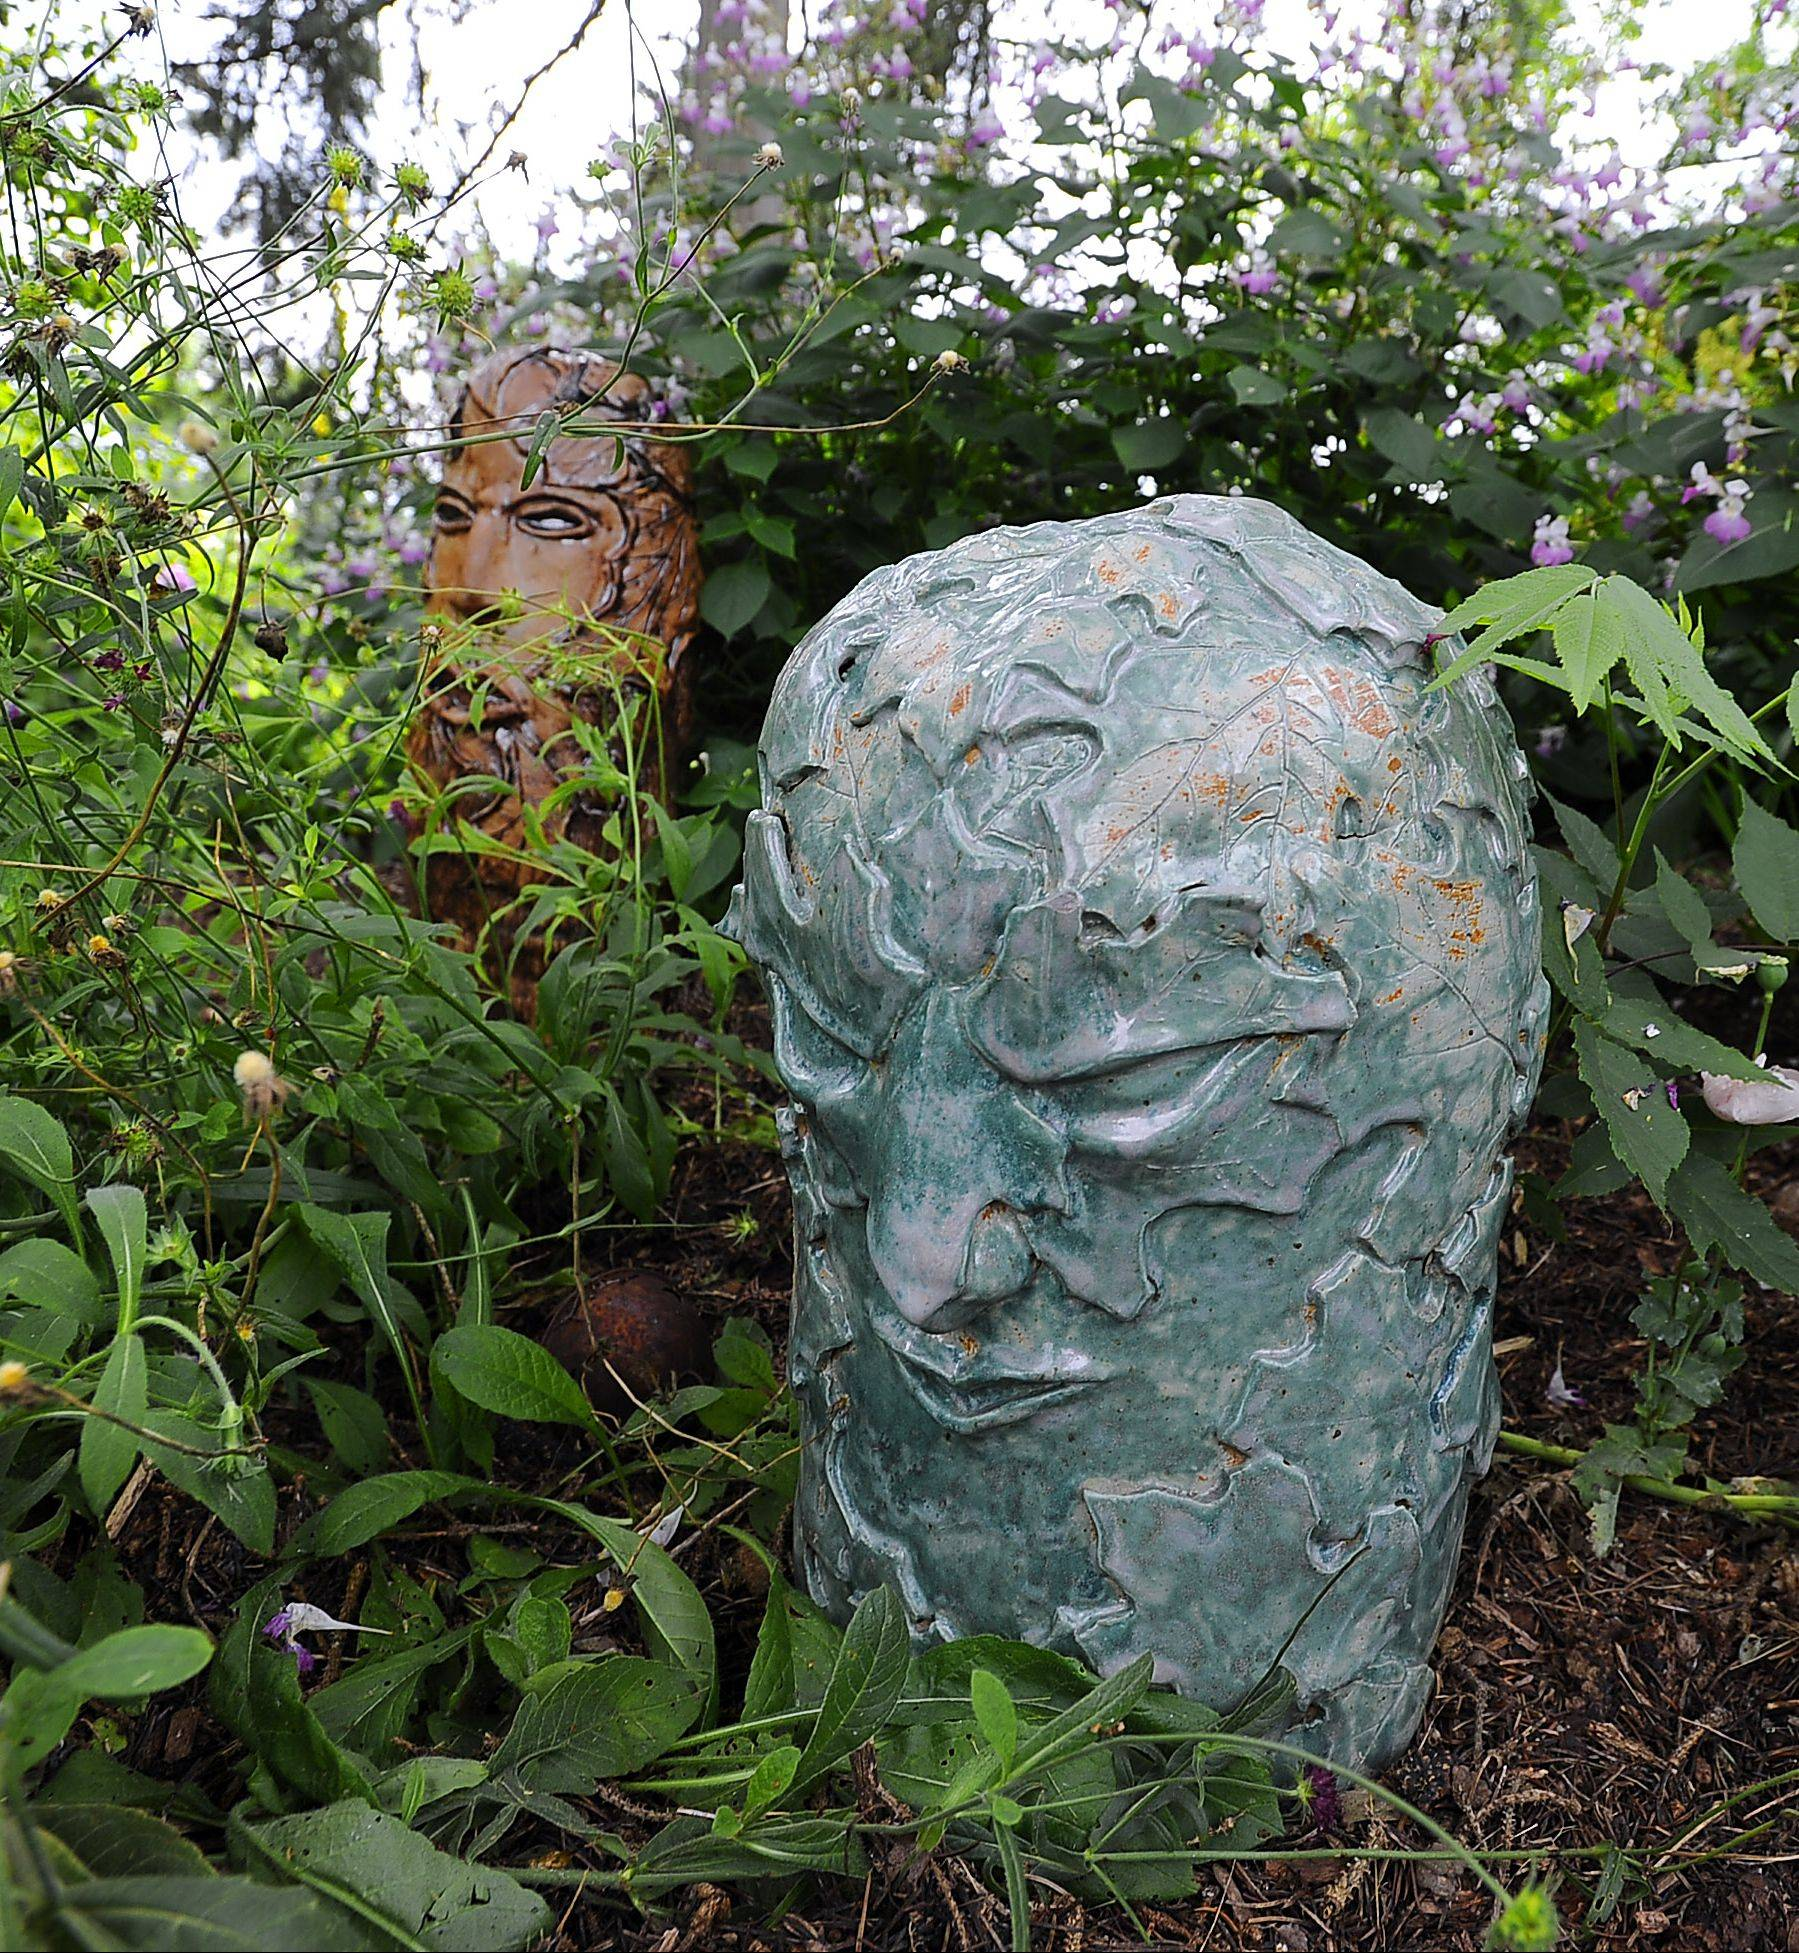 Lynn Rushing of Barrington Hills says the Green Man in her garden is an ancient symbol of Nature still celebrated today. In the background lurks the Wood Man.